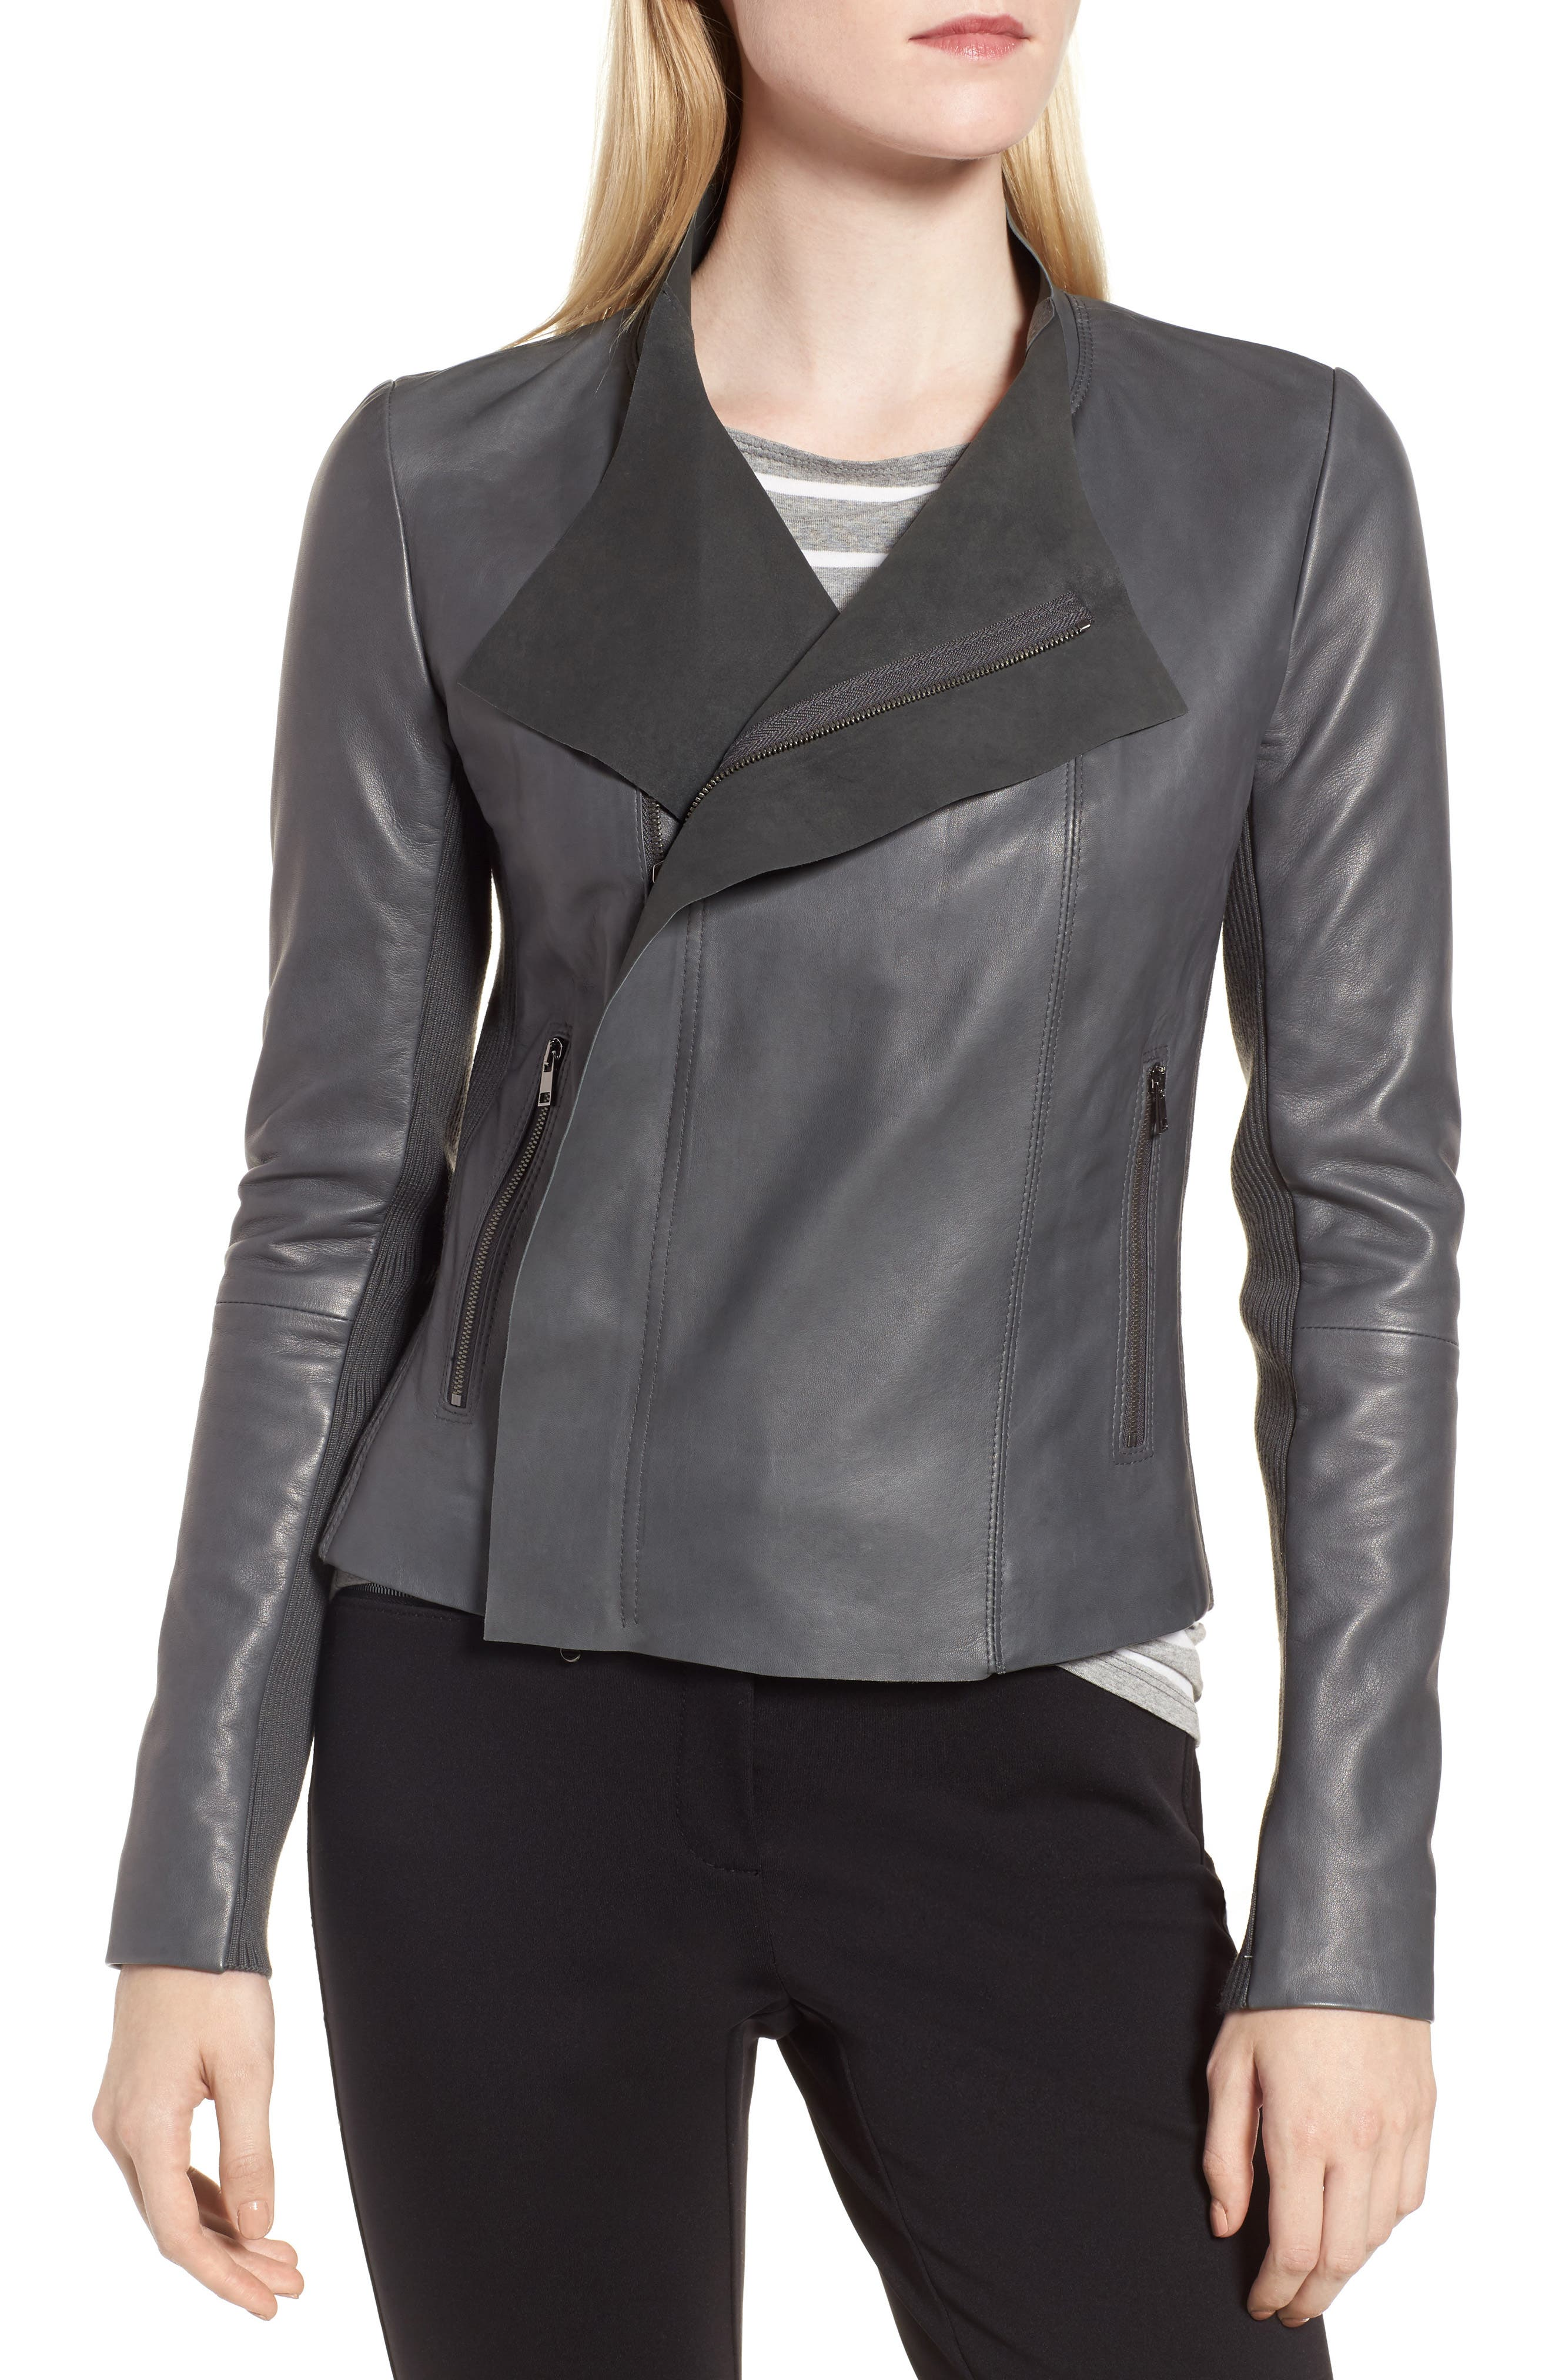 Cascade Front Leather Jacket,                             Alternate thumbnail 4, color,                             021